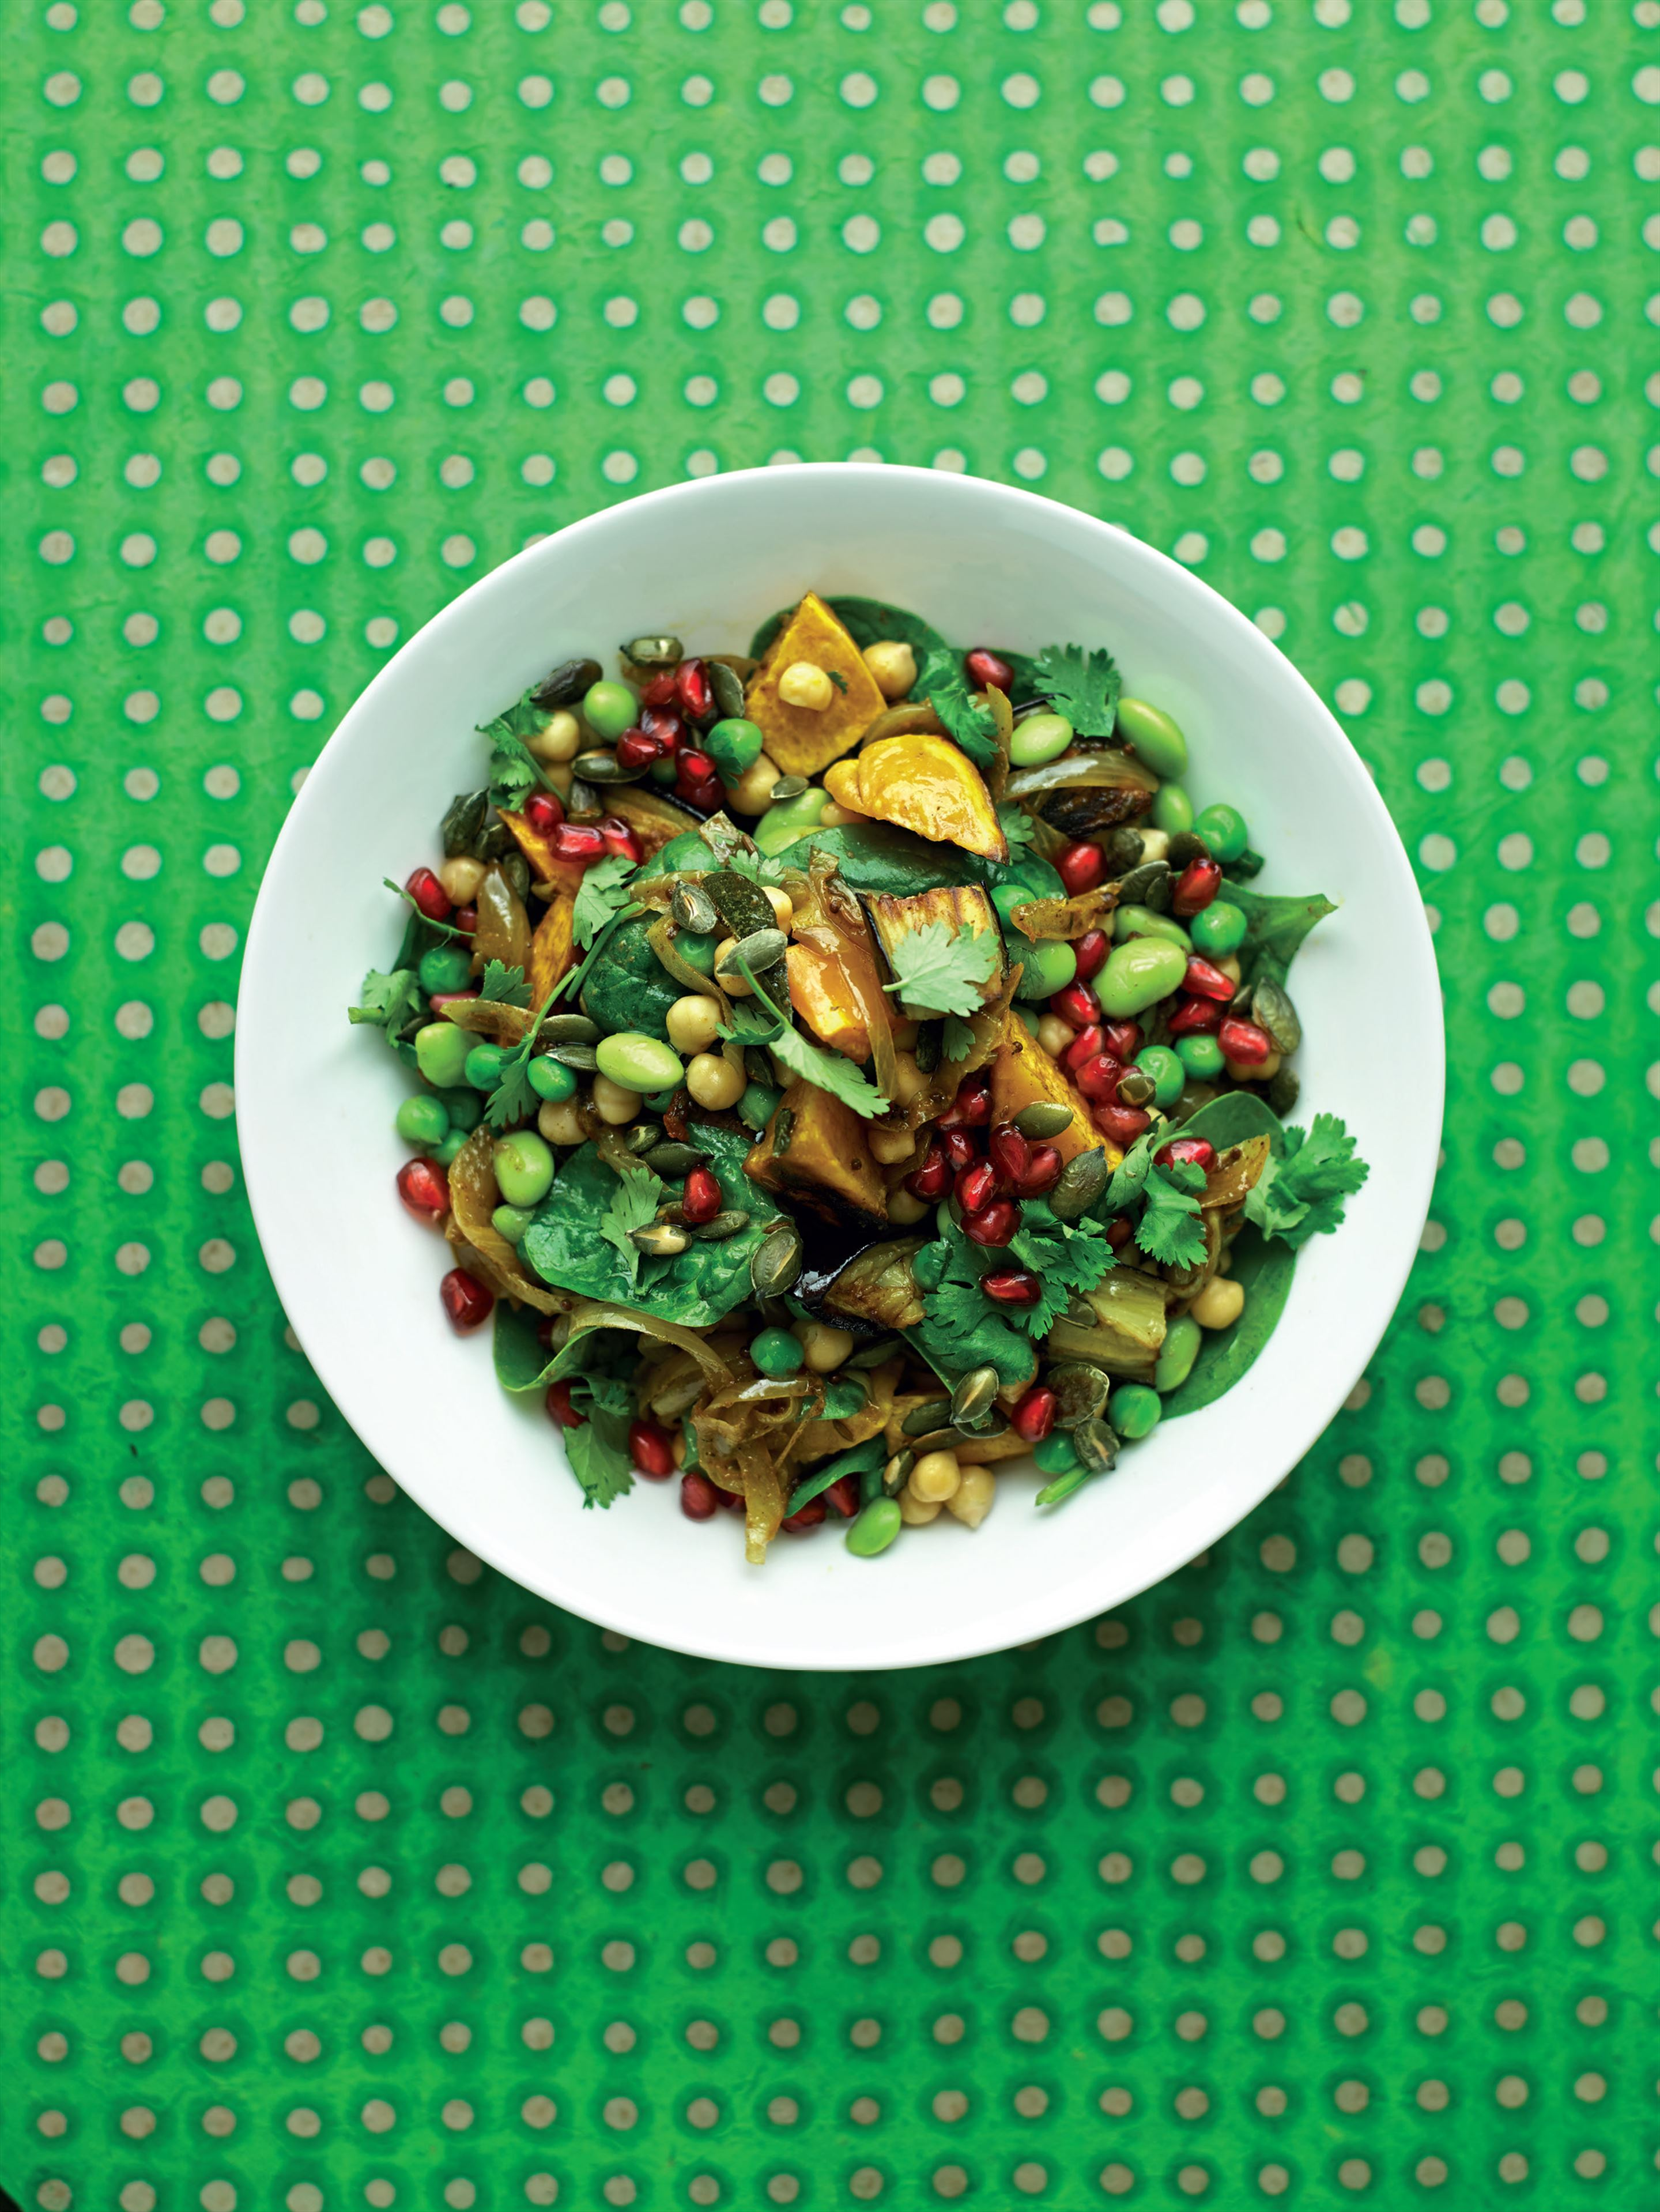 Warm Indian 'chana chaat' with pomegranate